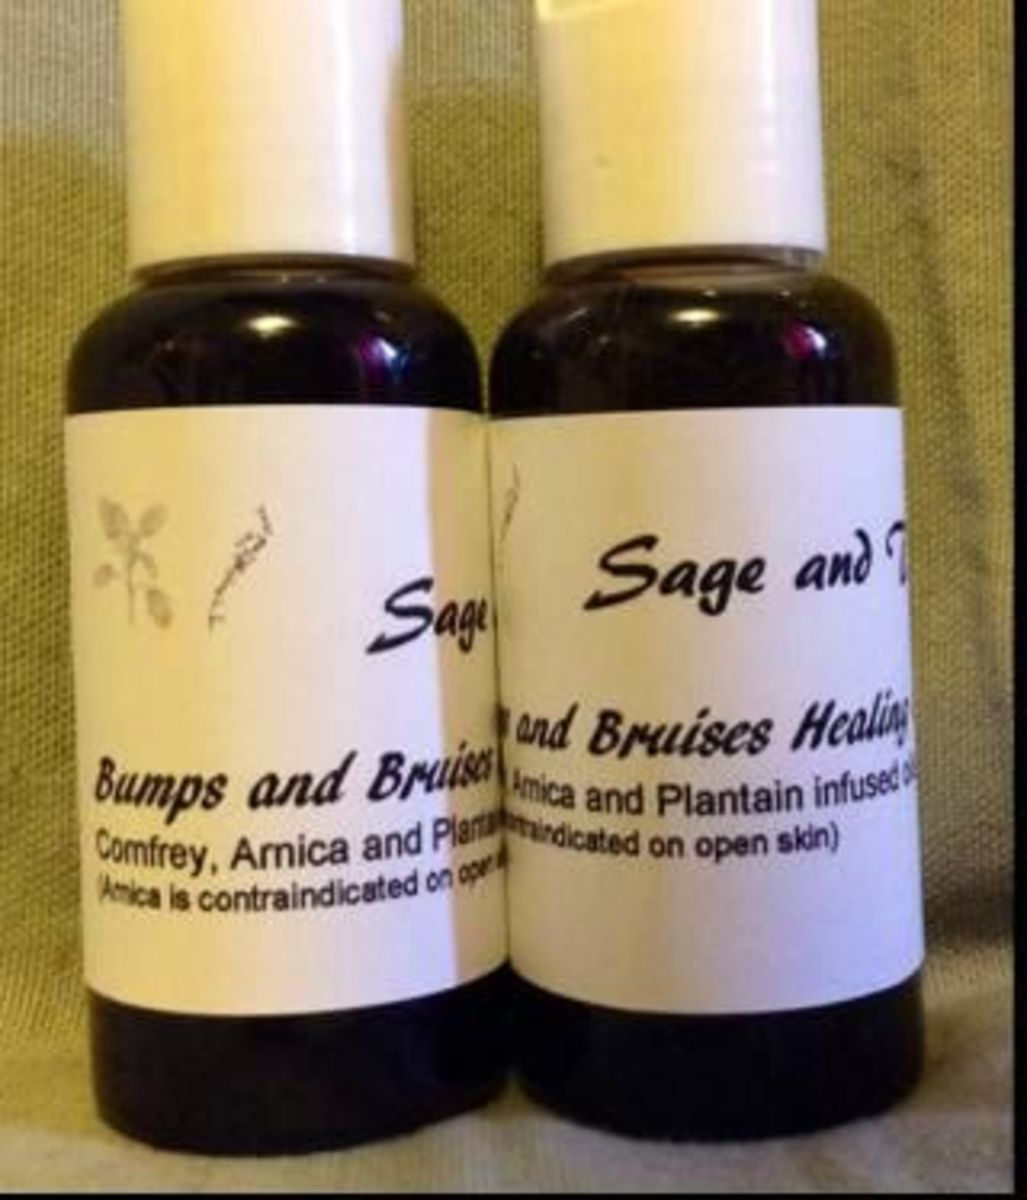 Bumps and bruises blend consisting of comfrey, plantain, arnica infused olive oil